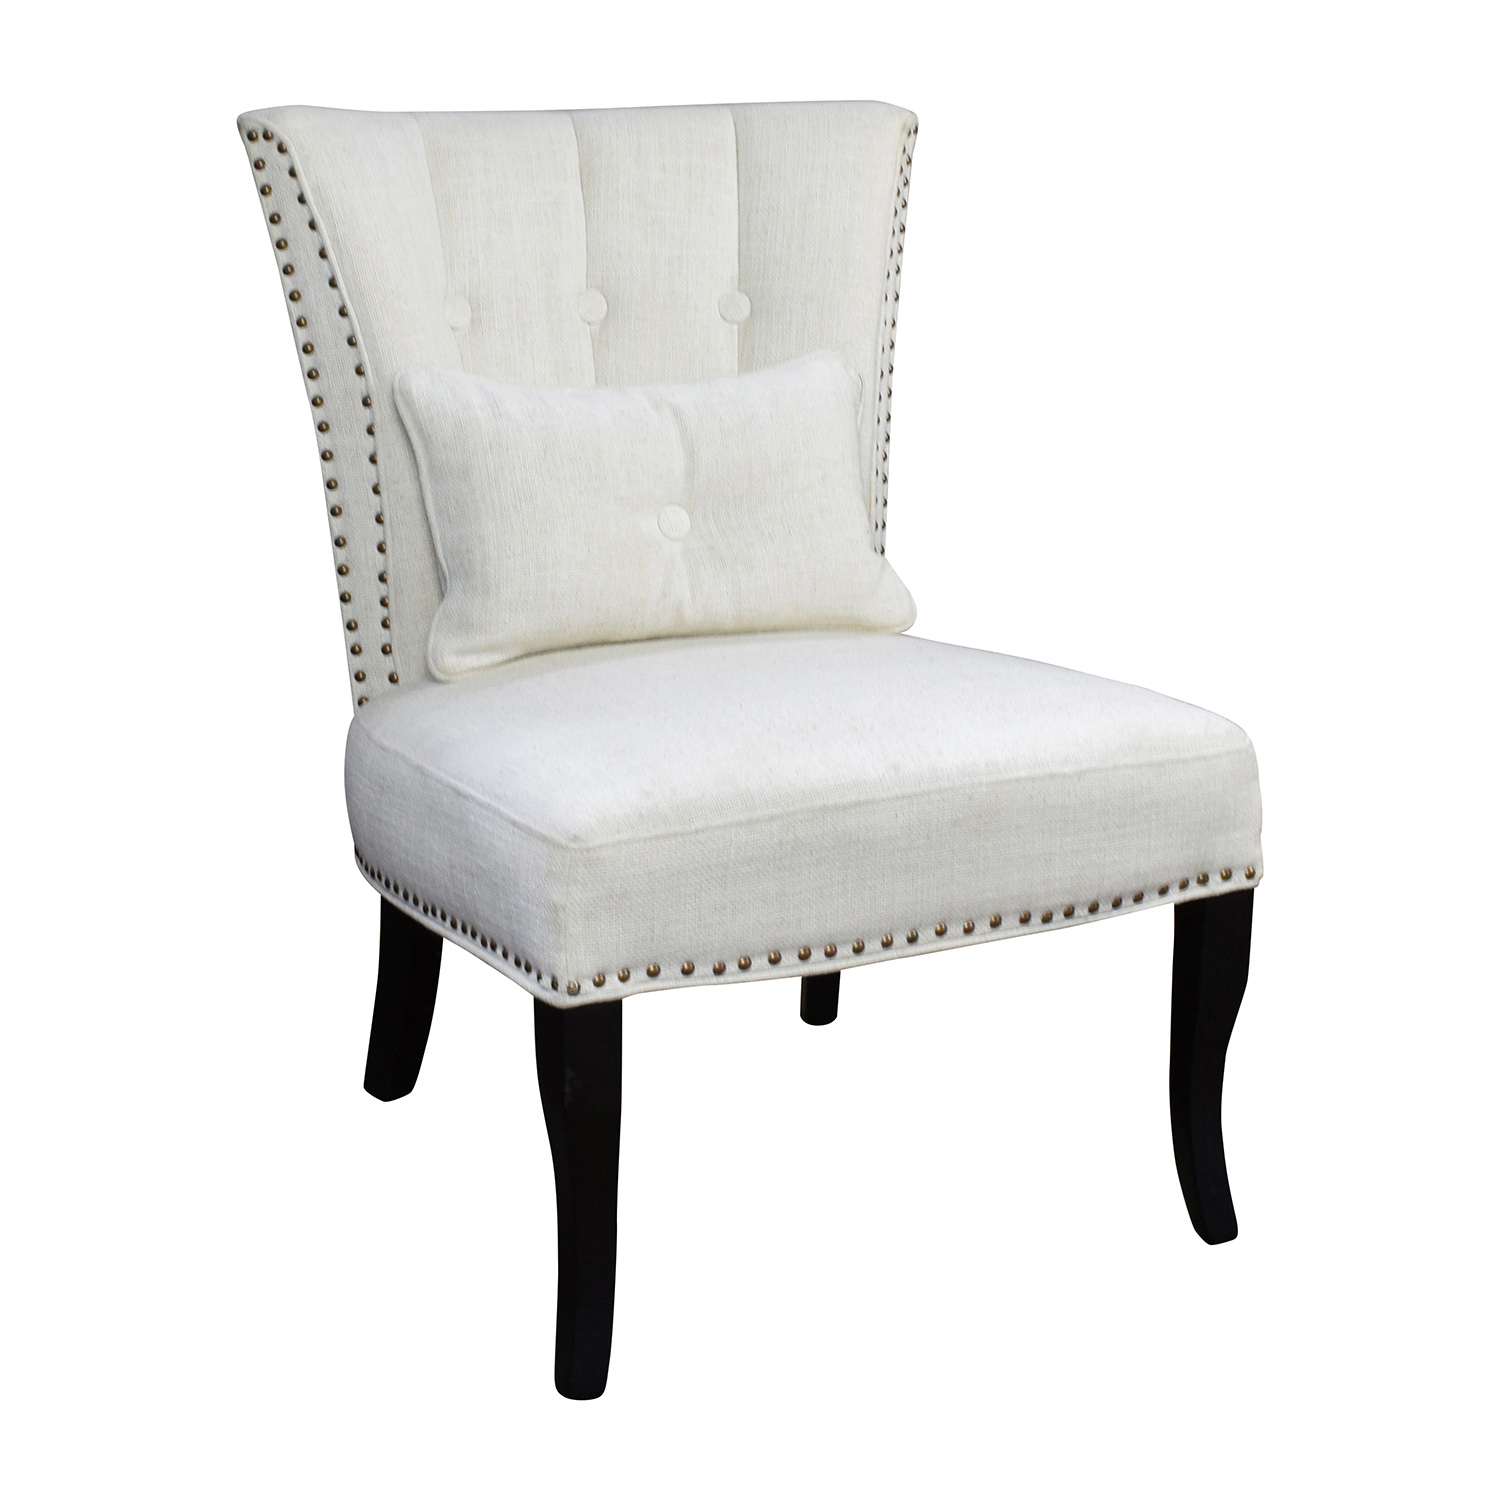 66 off unkown white tufted accent chair chairs Tufted accent chair